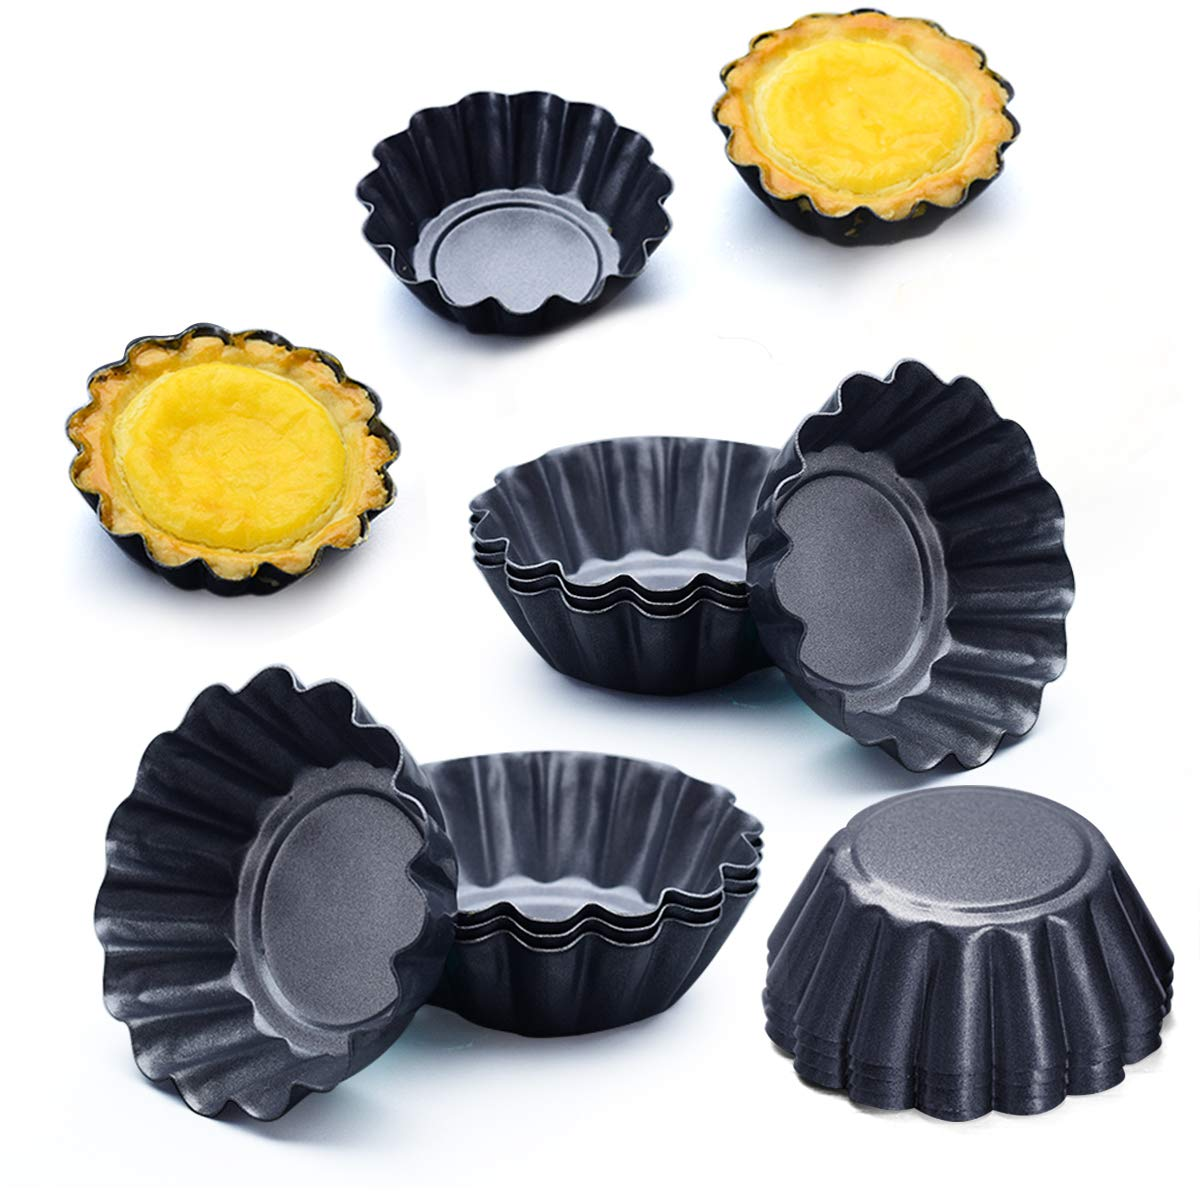 "Amytalk 12 Packs Egg Tart Mold, Cupcake Cake Muffin Molds Tin Pan Baking Tool, Size 2.6""x 0.9"", Carbon Steel"